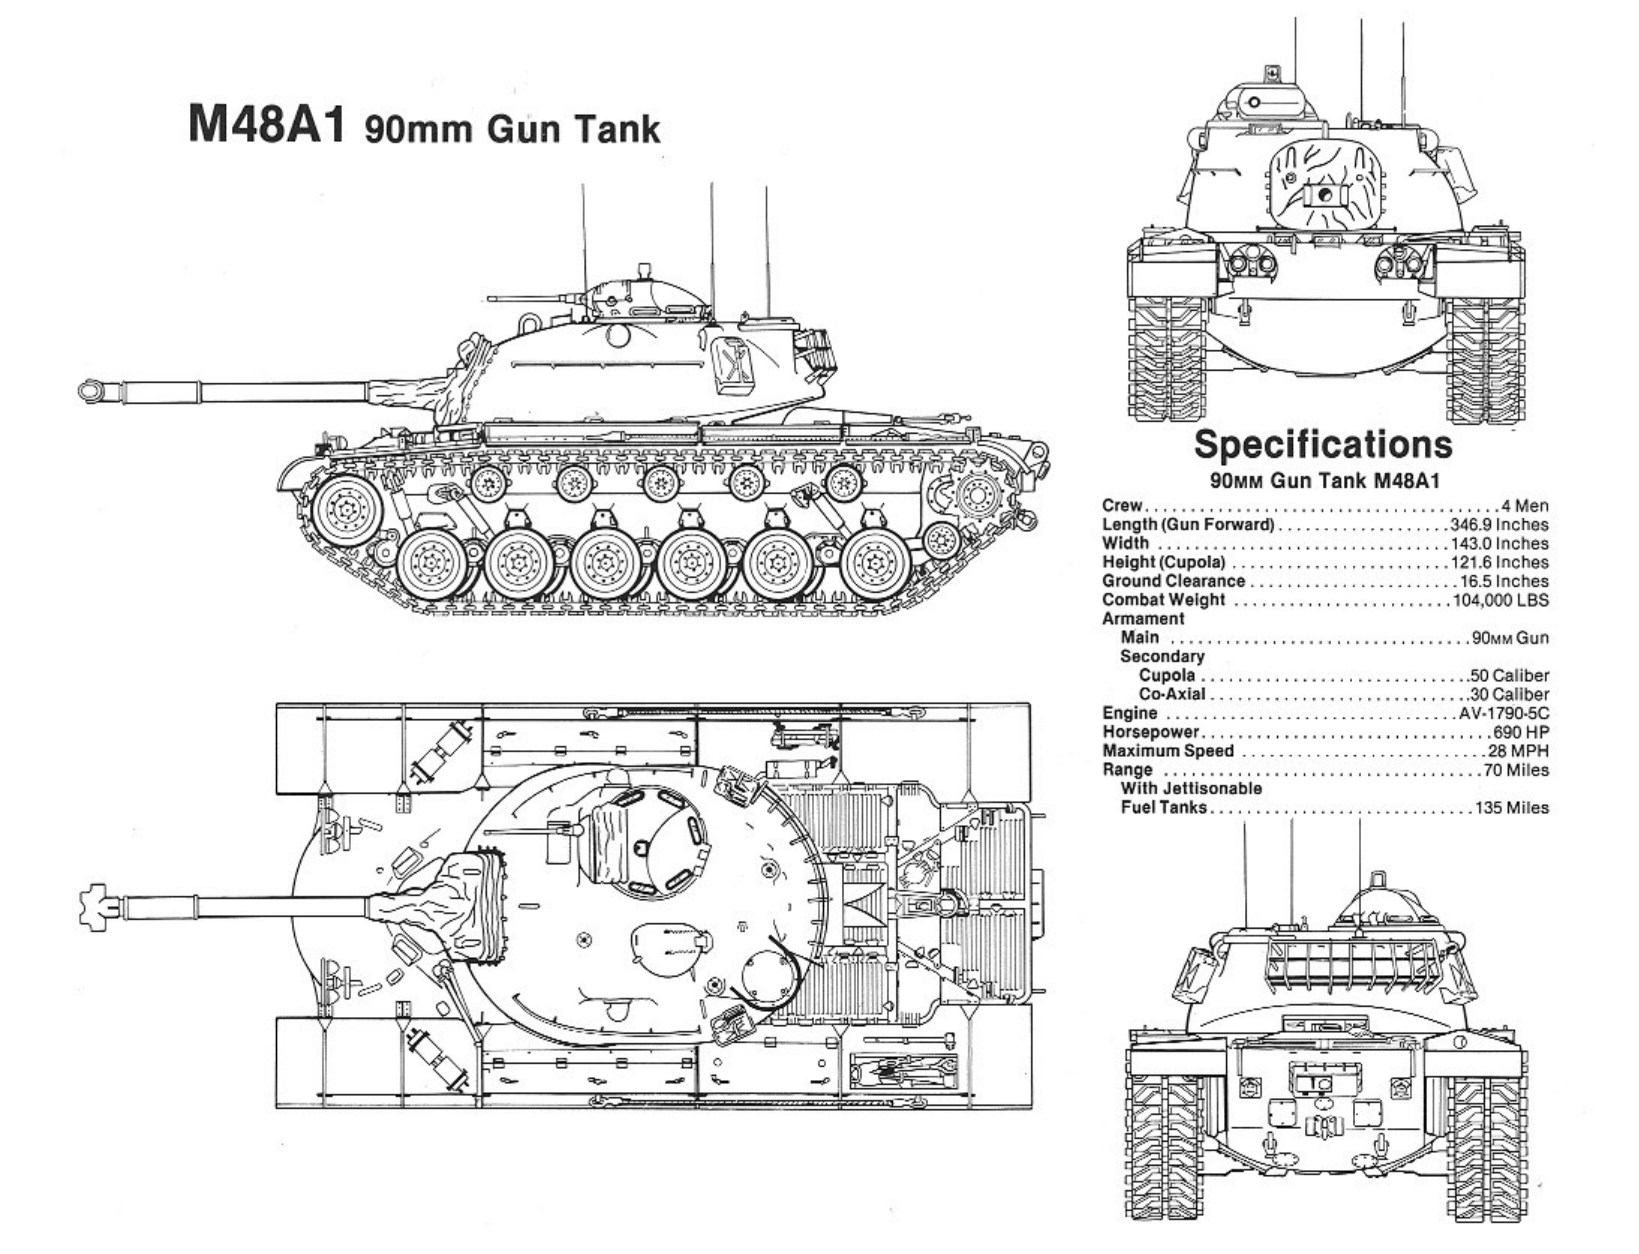 hight resolution of the u s army expressed its interest to the chrysler corporation in the development of a successor vehicle to the m47 tank in late 1950